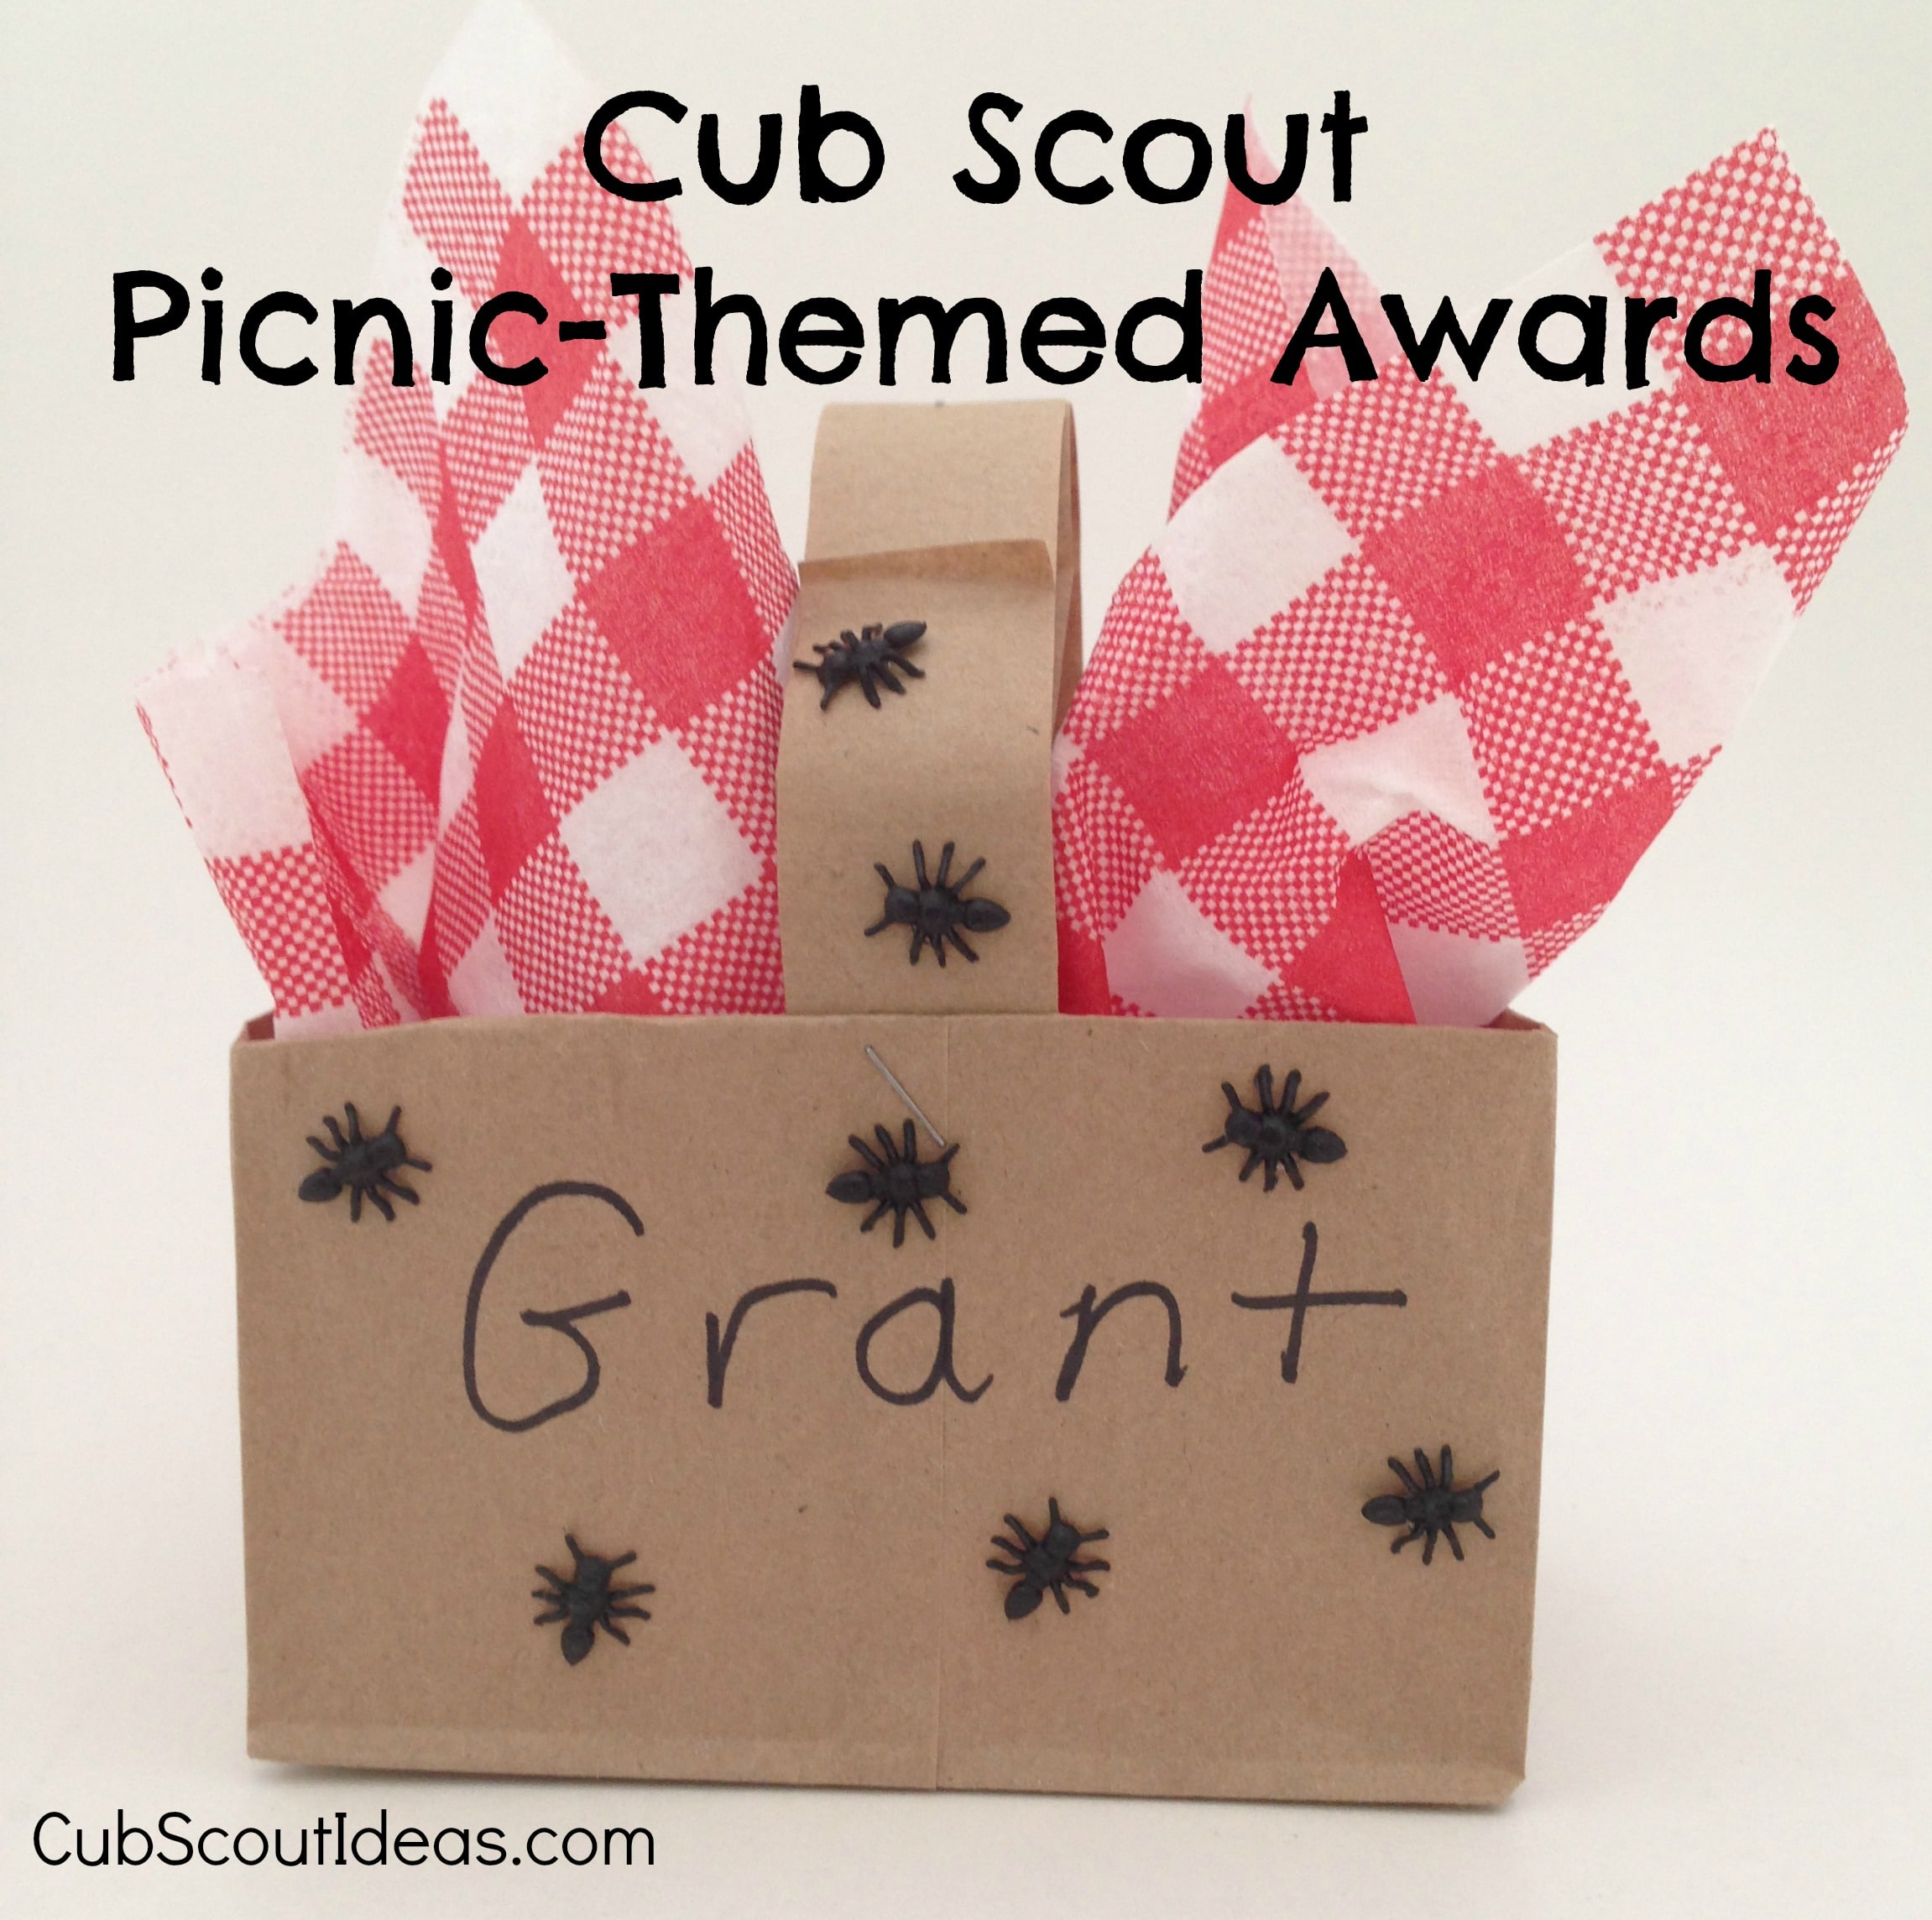 Cub Scout Picnic-Themed Awards